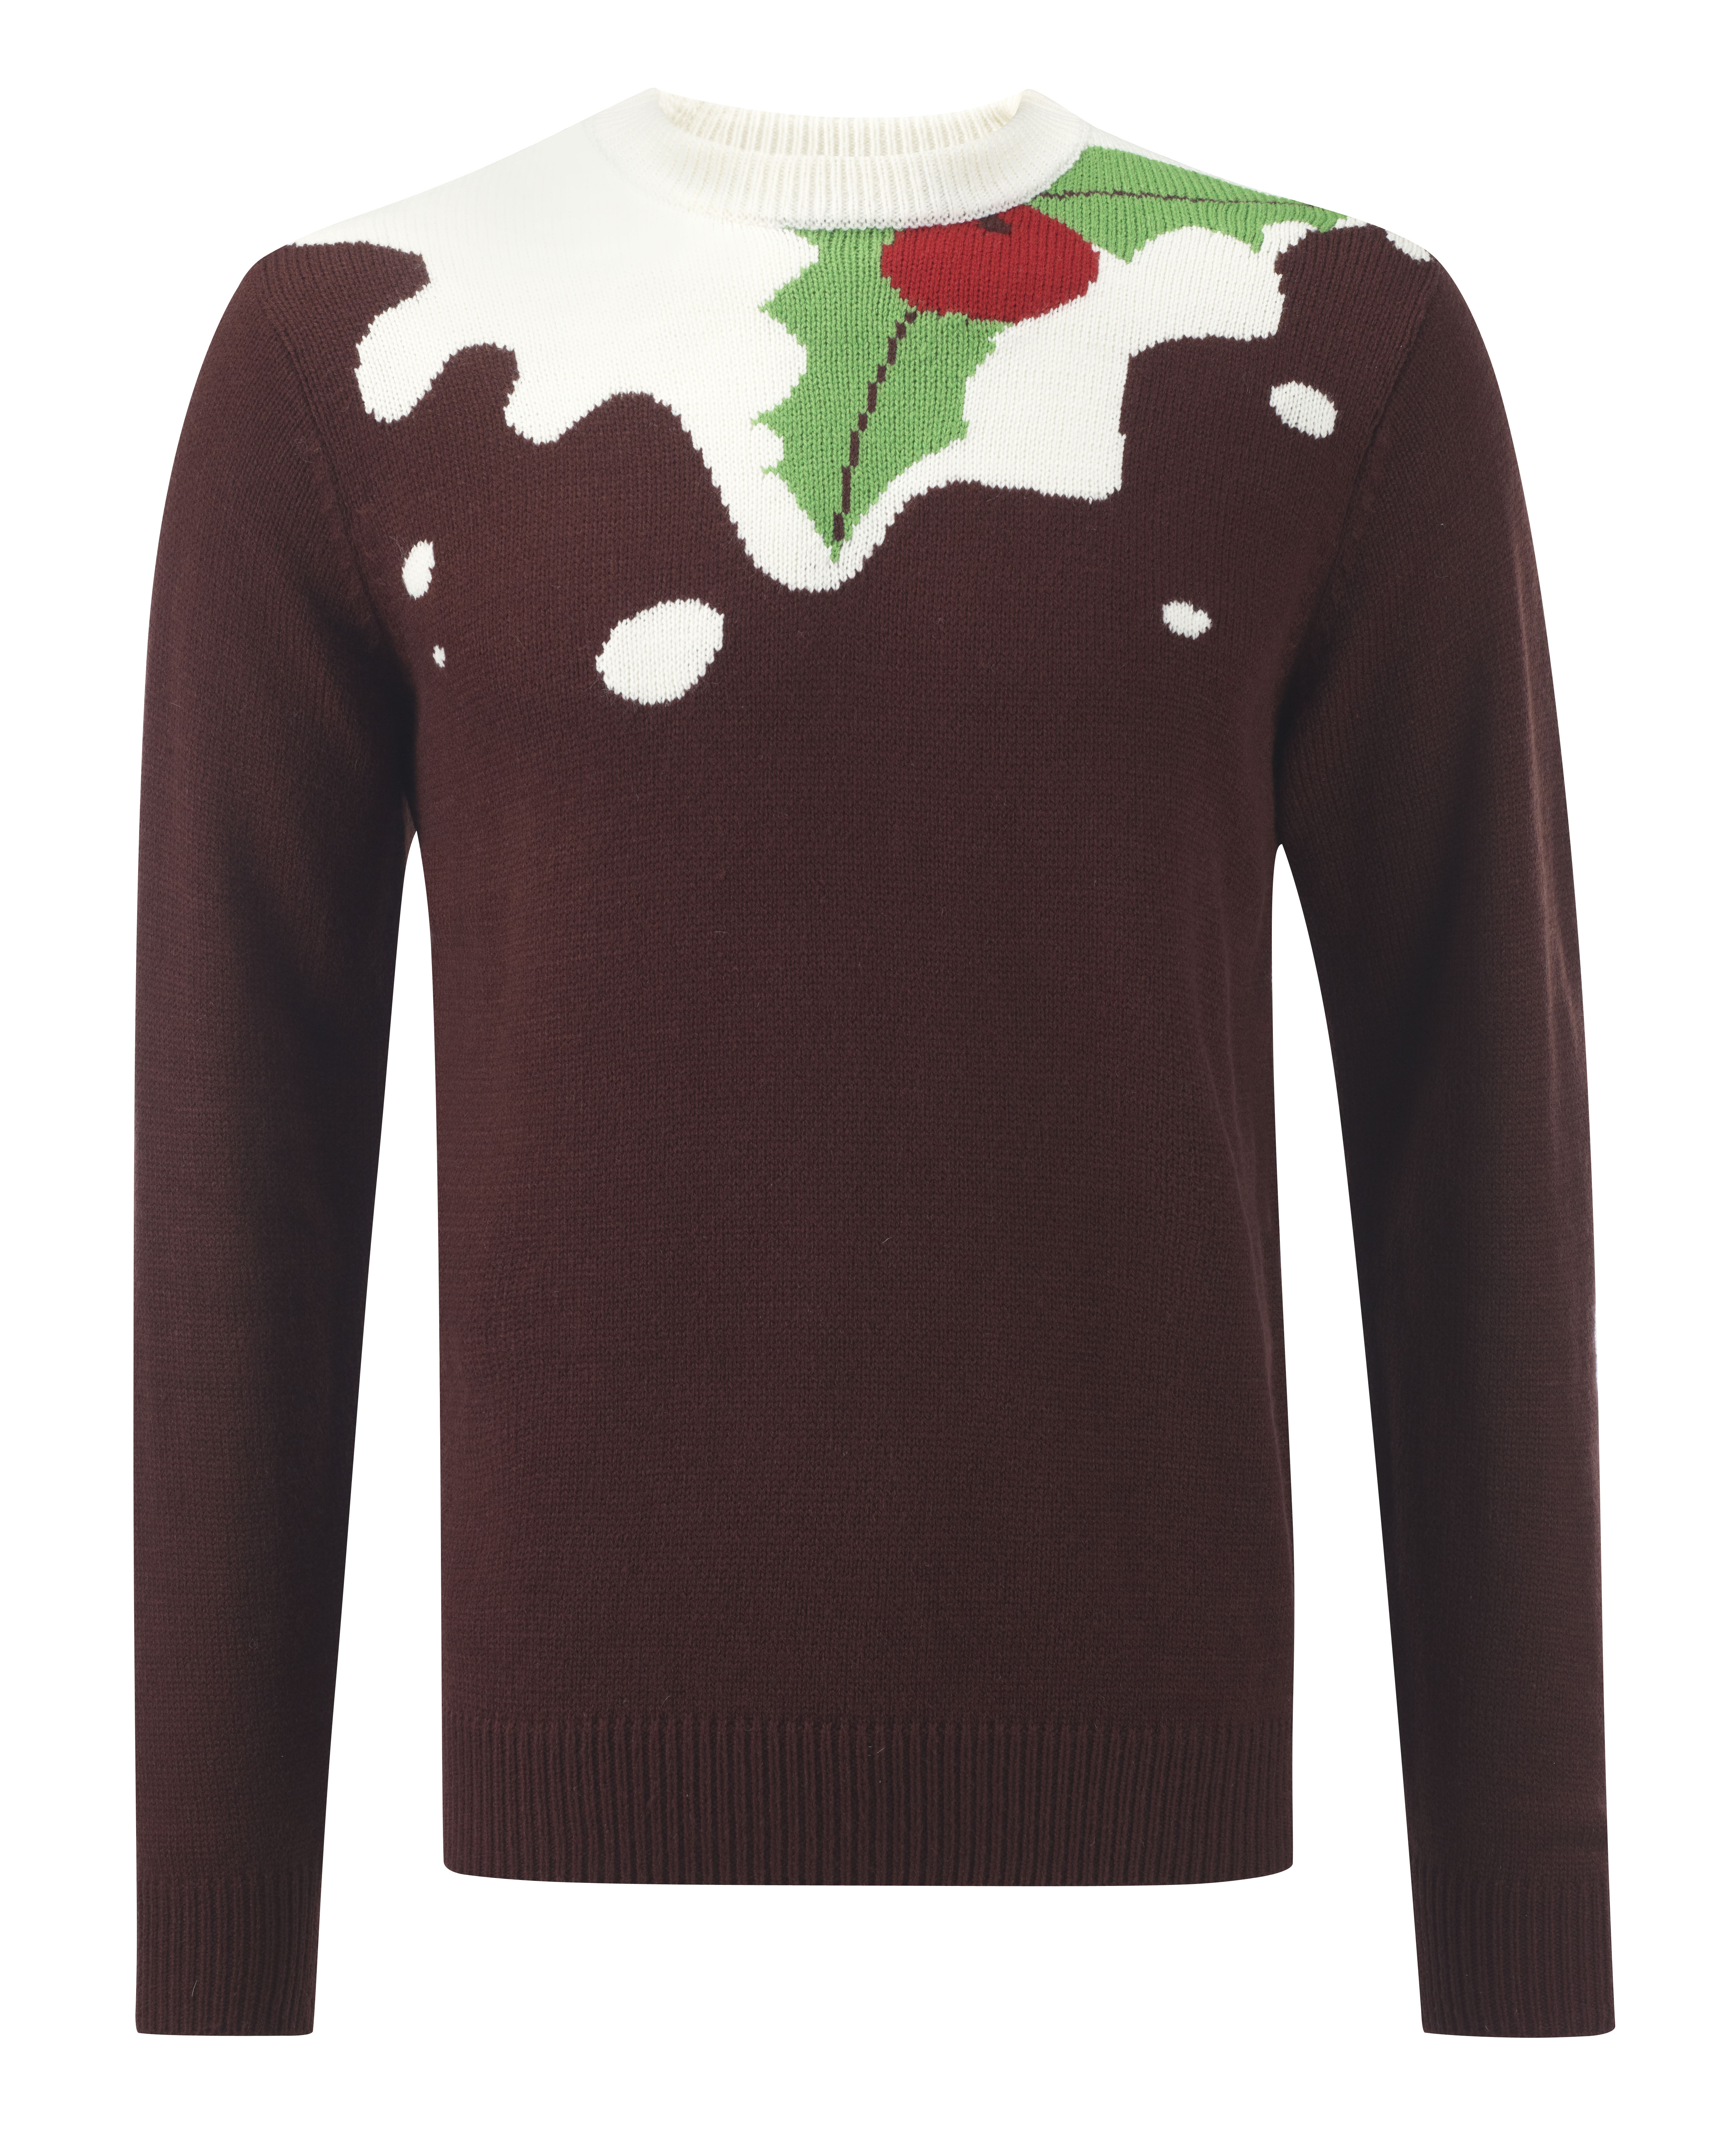 Knitting Pattern For Xmas Pudding Jumper : Christmas Jumper Store Blog All I want for Christmas is?